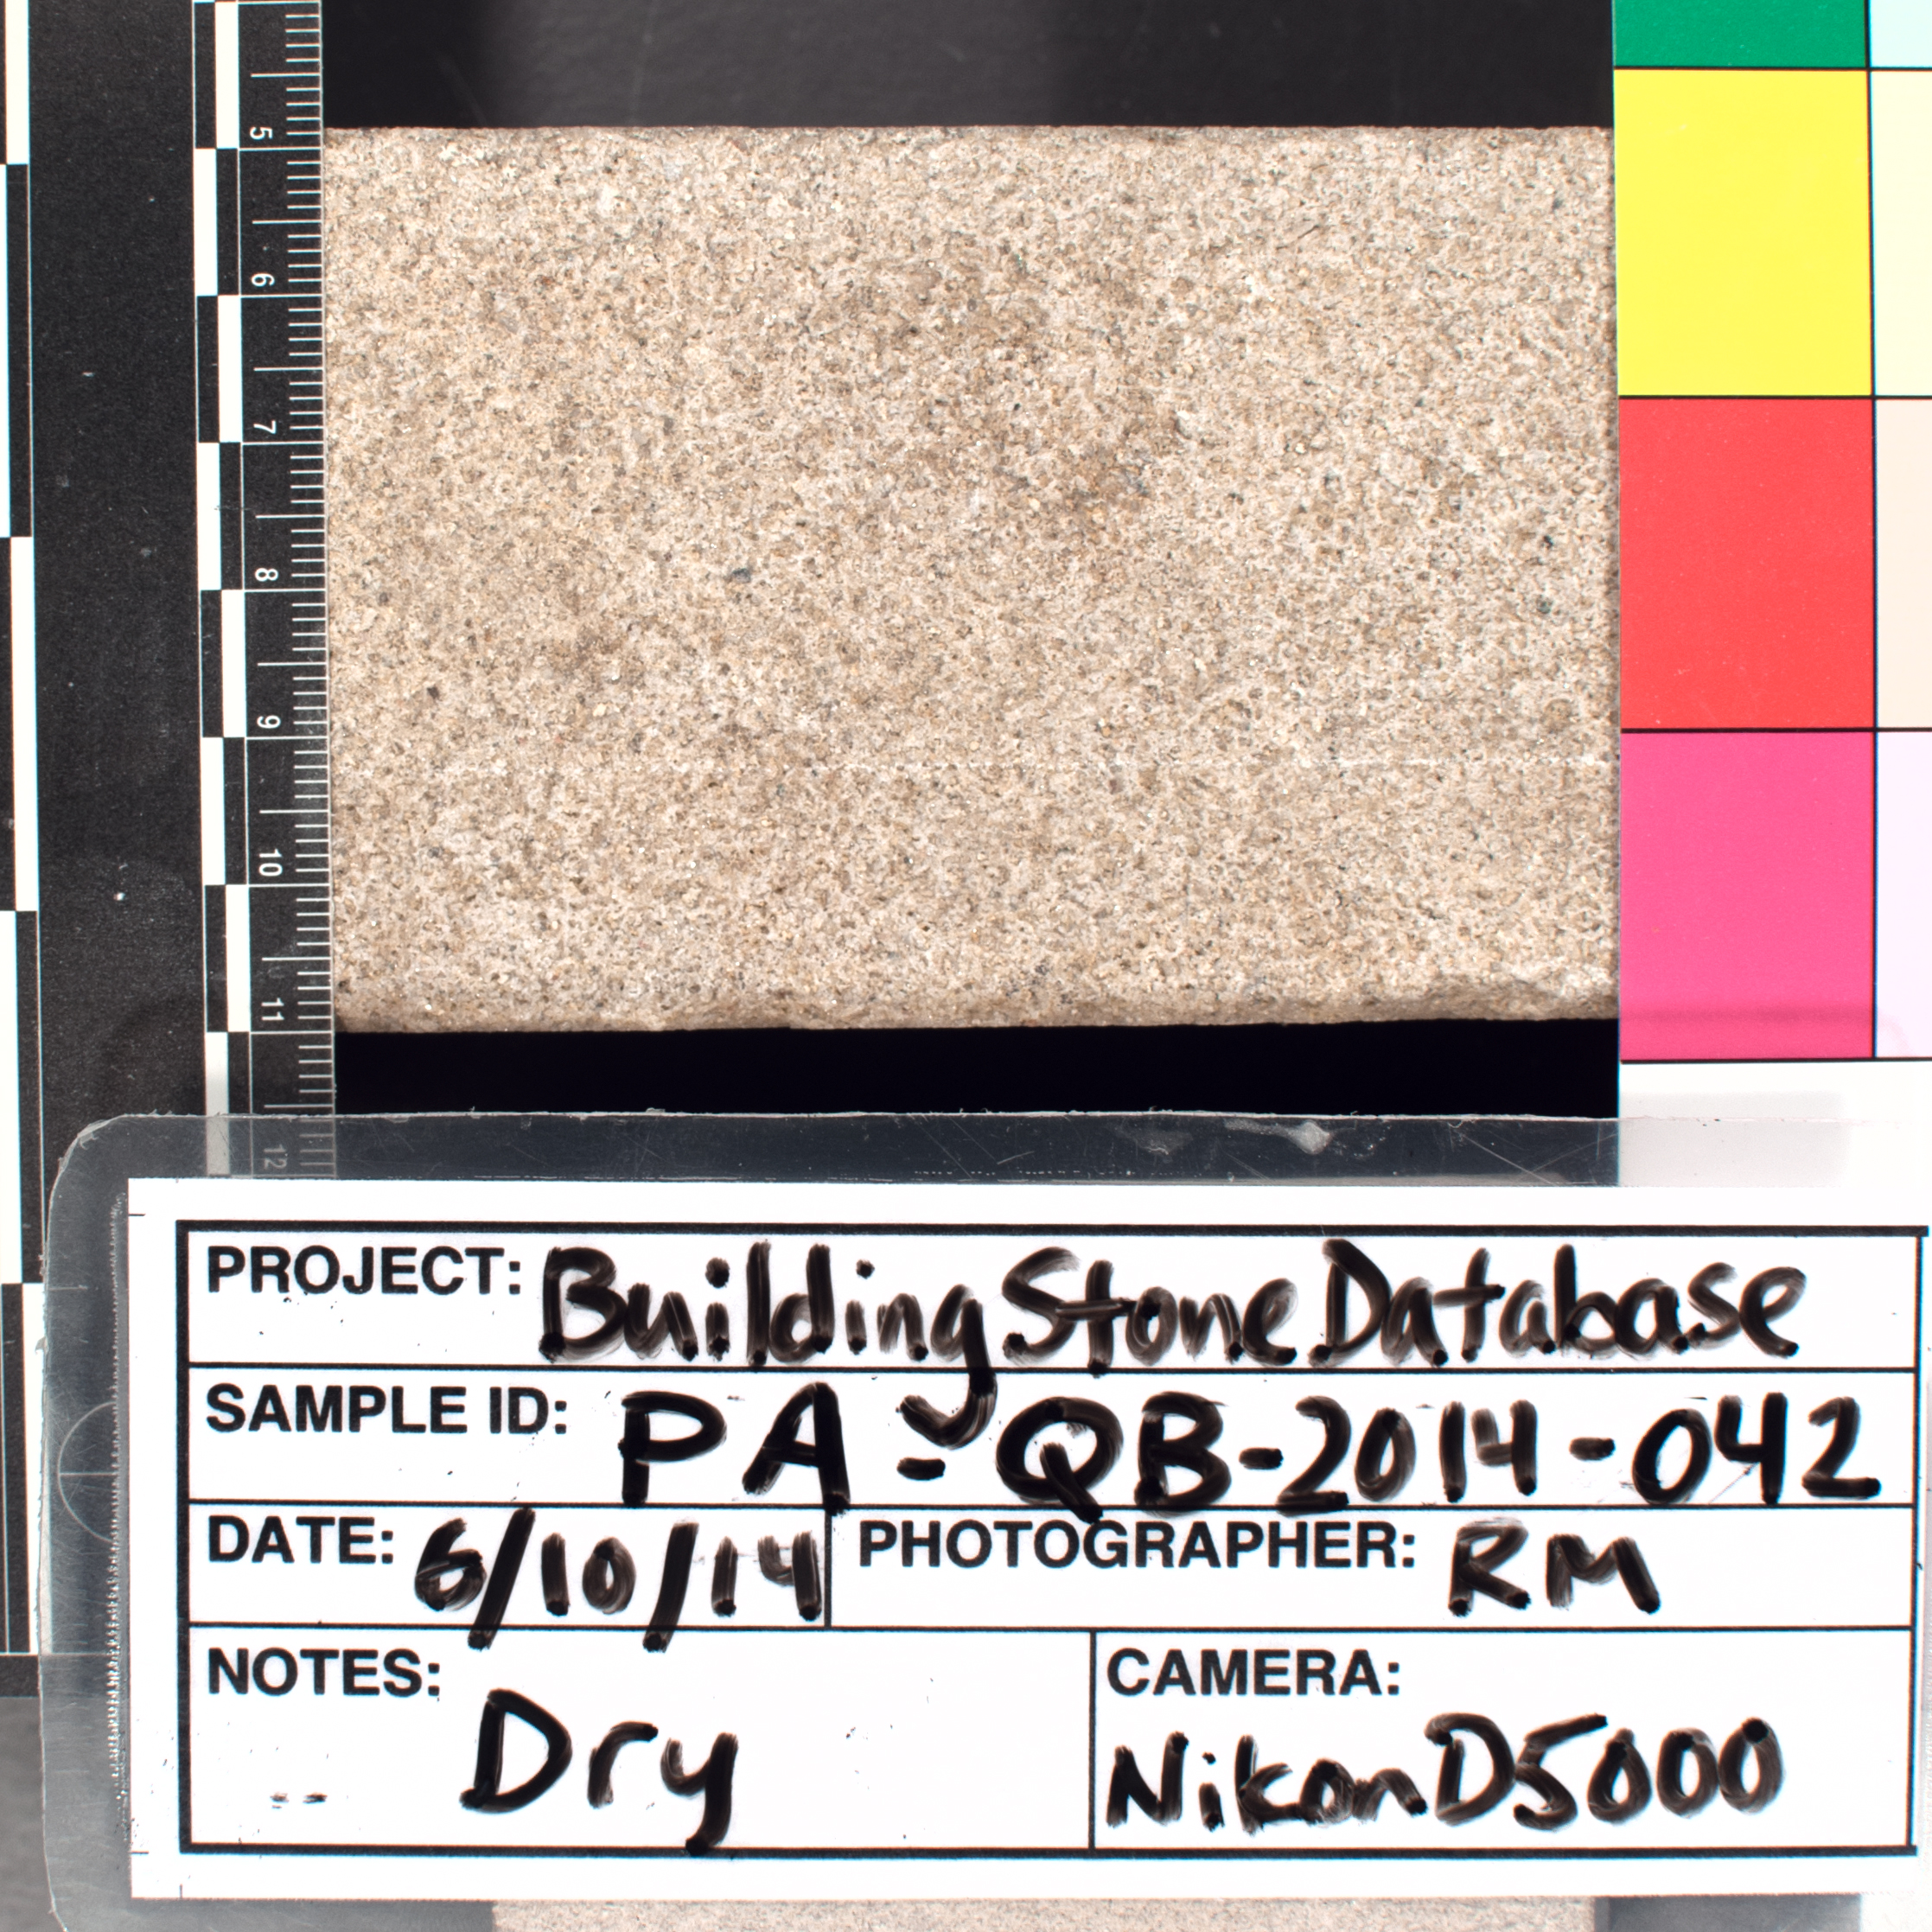 Close-up image of specimen in dry conditions. Finish: Smooth sawn